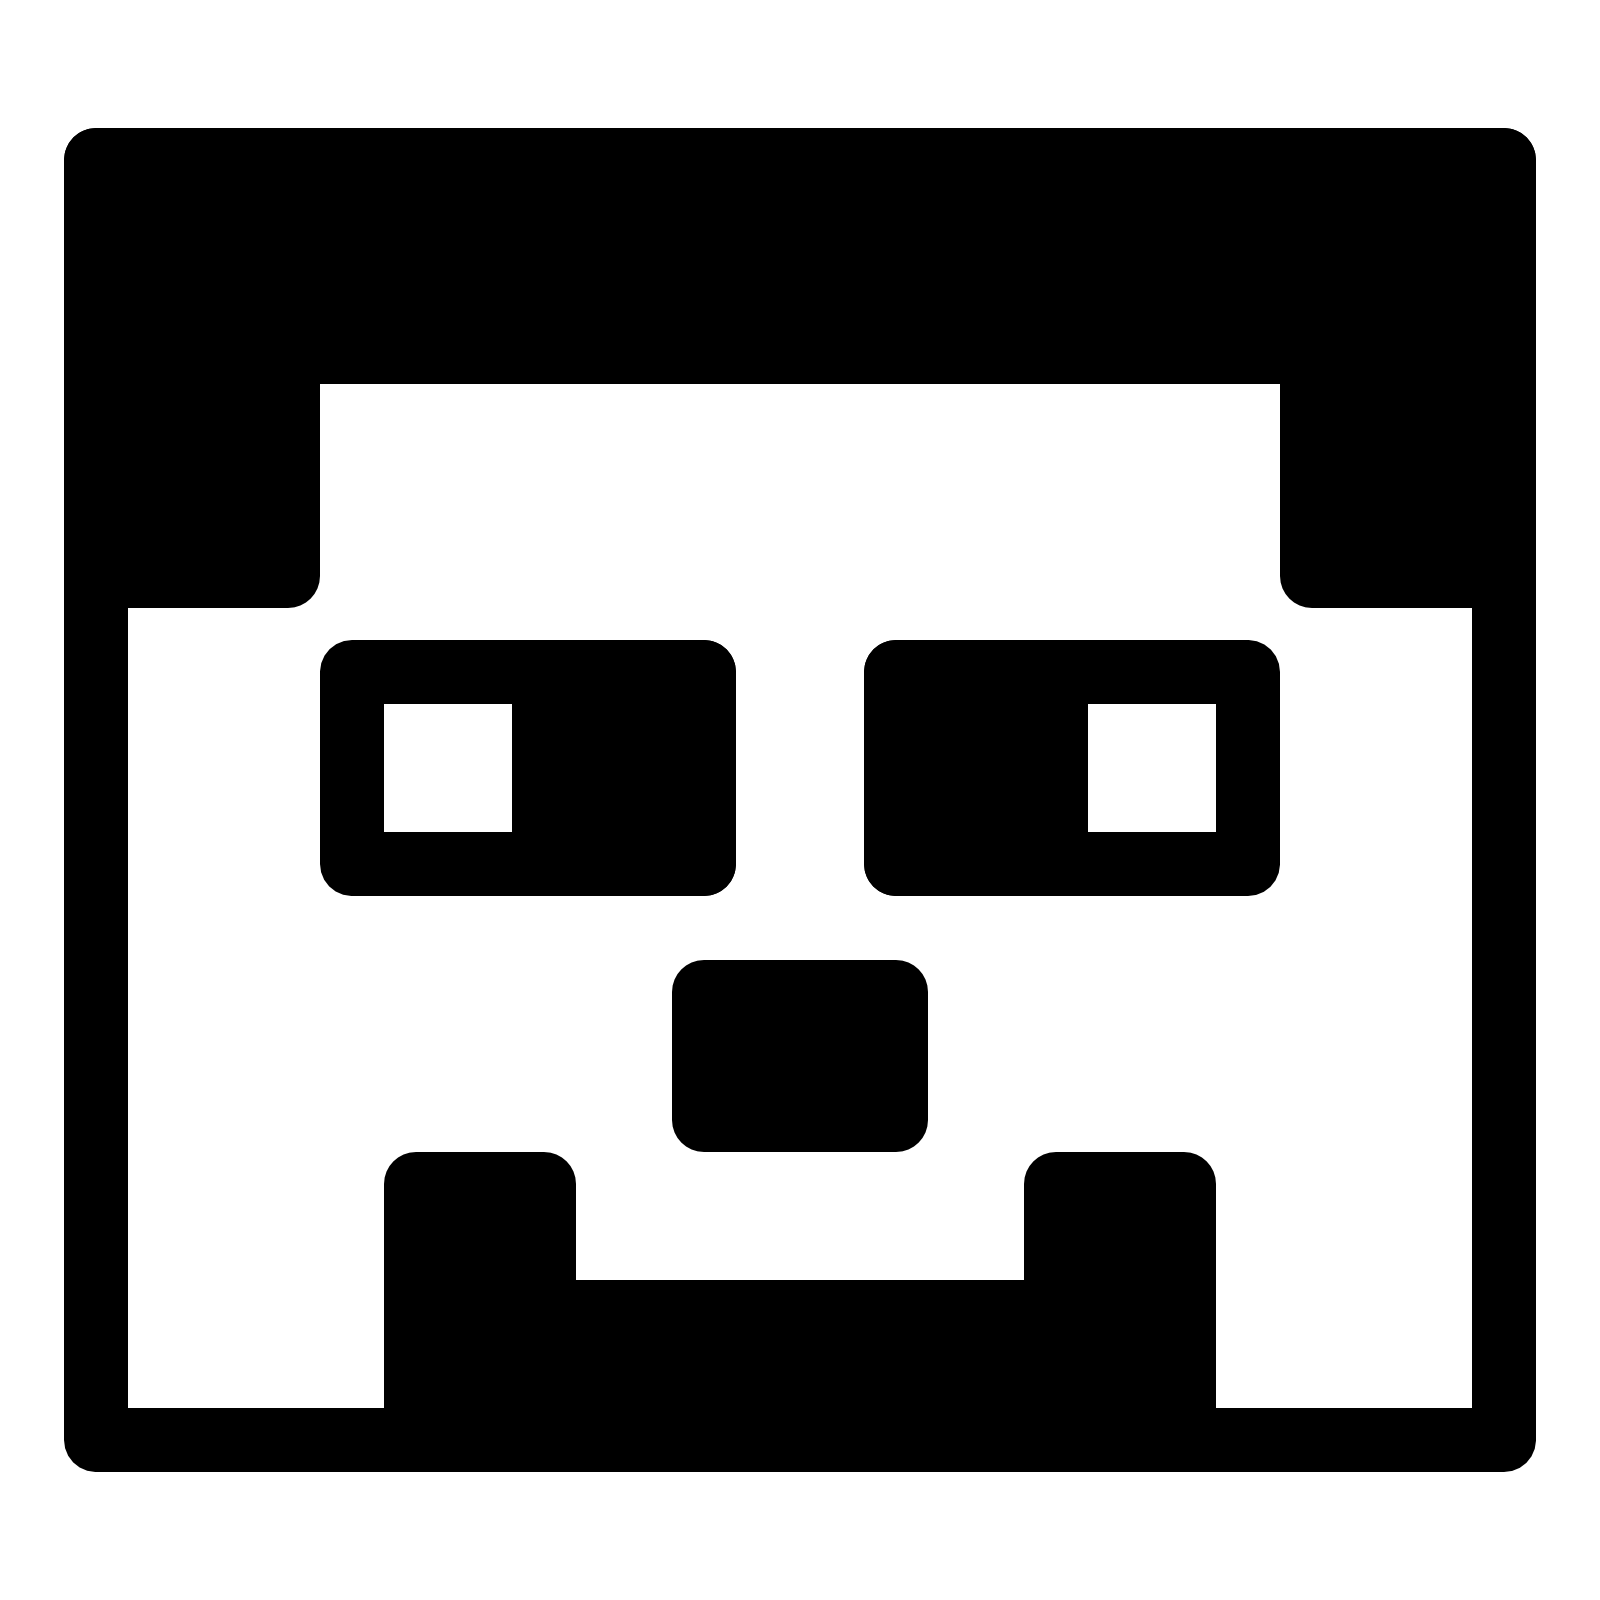 Minecraft clipart black and white, Minecraft black and white.